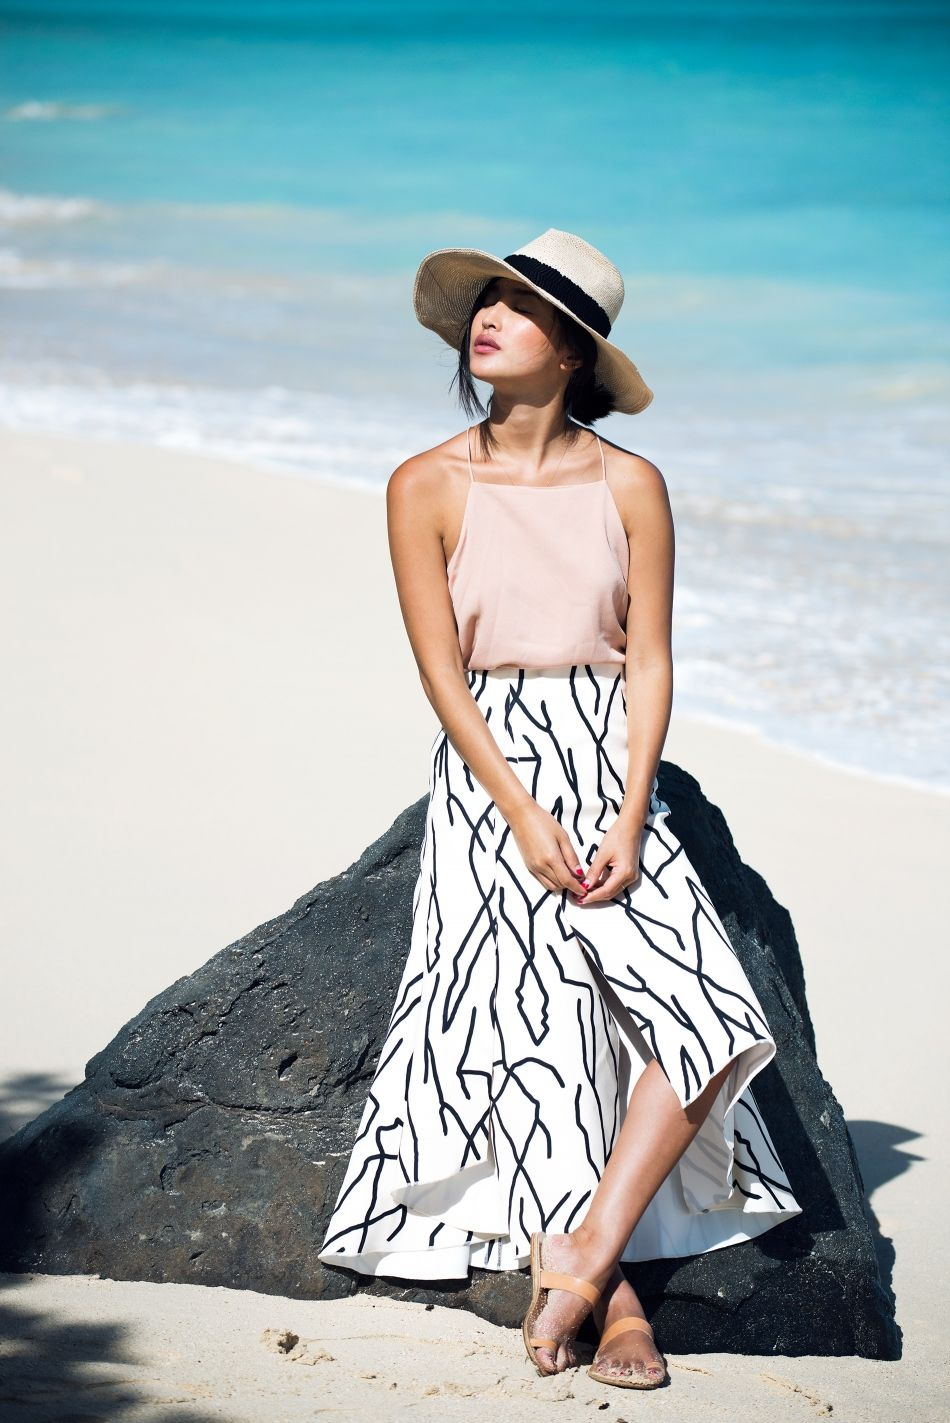 What To Wear To A Beach Wedding.What To Wear To A Beach Wedding The Ultimate Guide